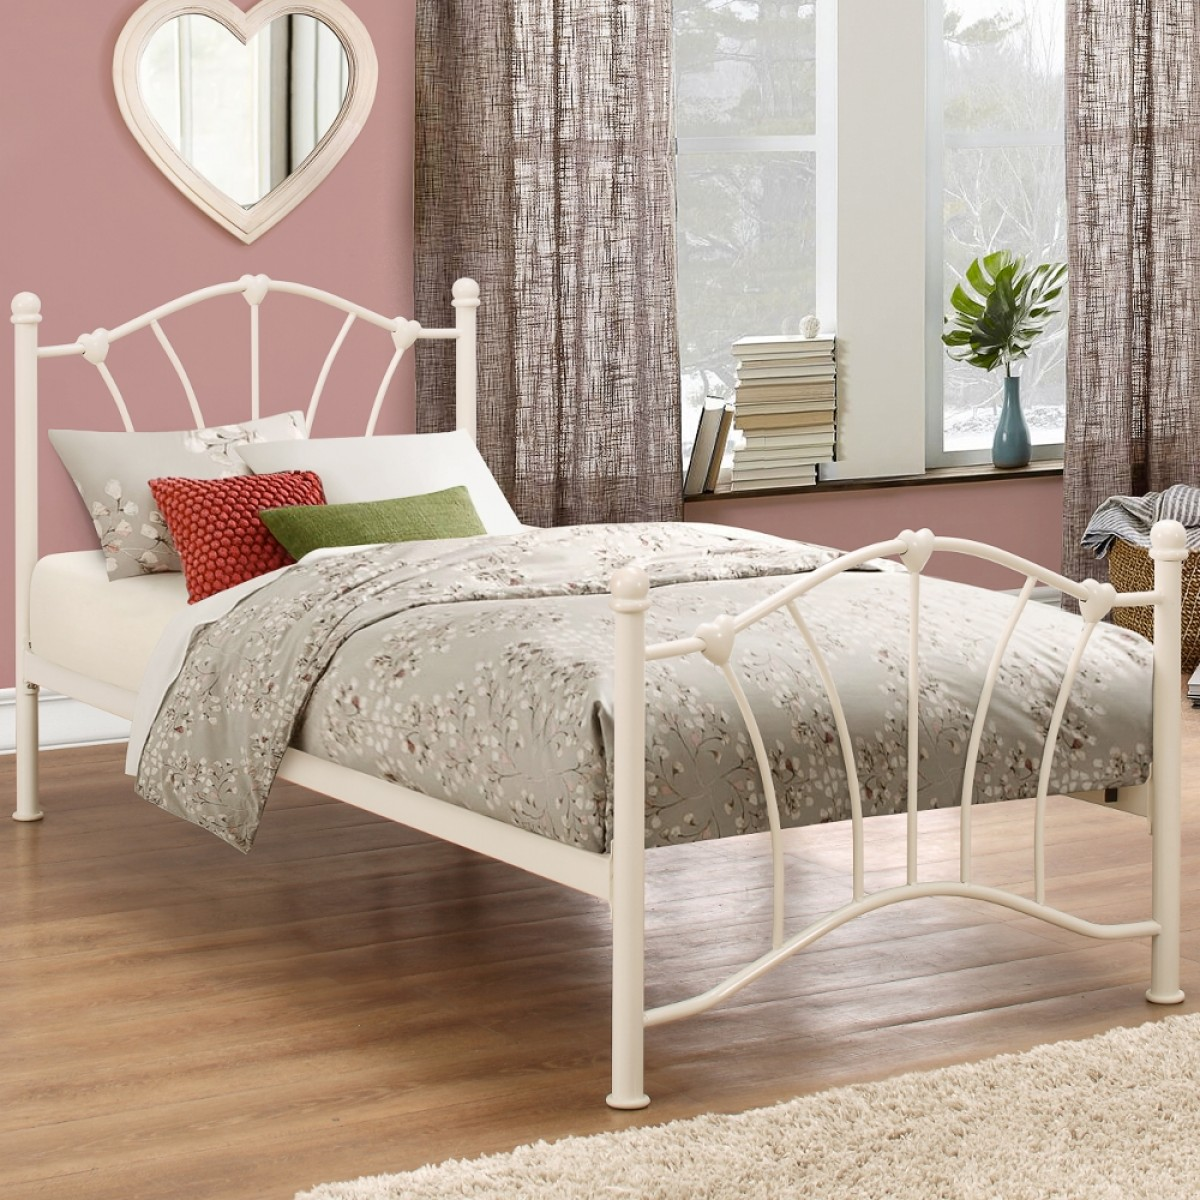 Sophia Cream Metal Bed